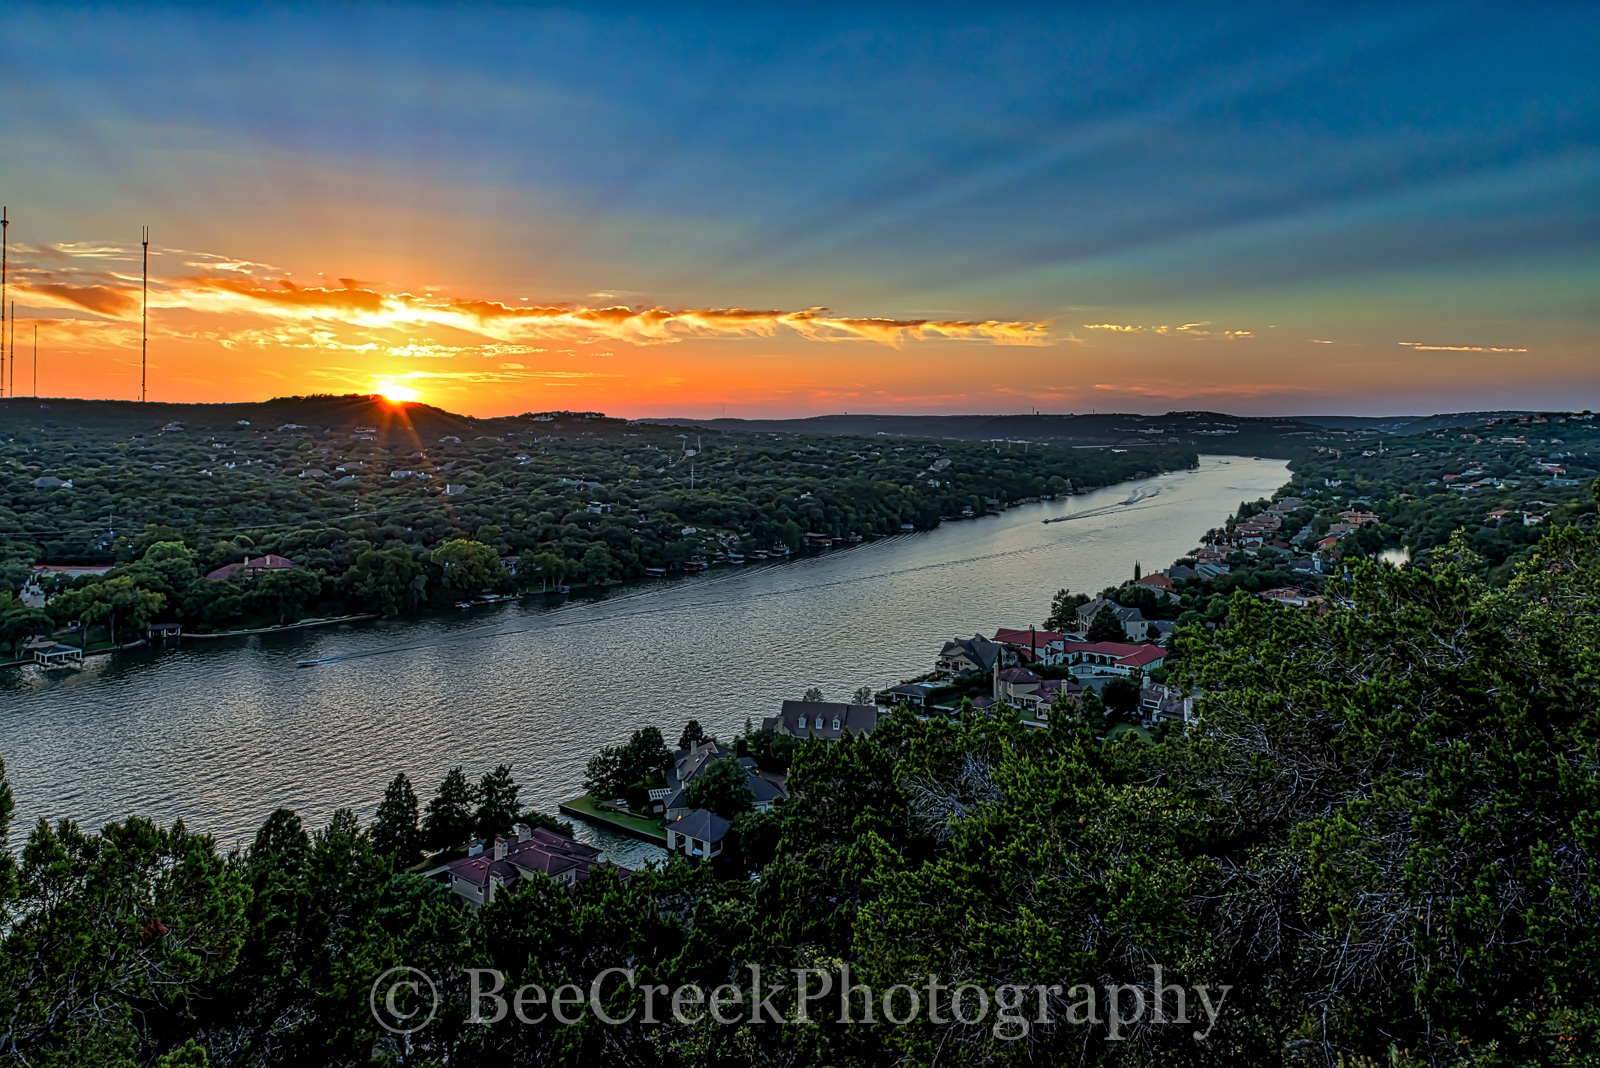 Mount Bonnell, Mount Bonnell at Sunset, Mt Bonnell, sunset, landscape, austin landscape, Texas Landscape, Austin, Austin texas, Lake Austin, cityscape, water, Texas, urban, blue waters, hiking, scenic, photo